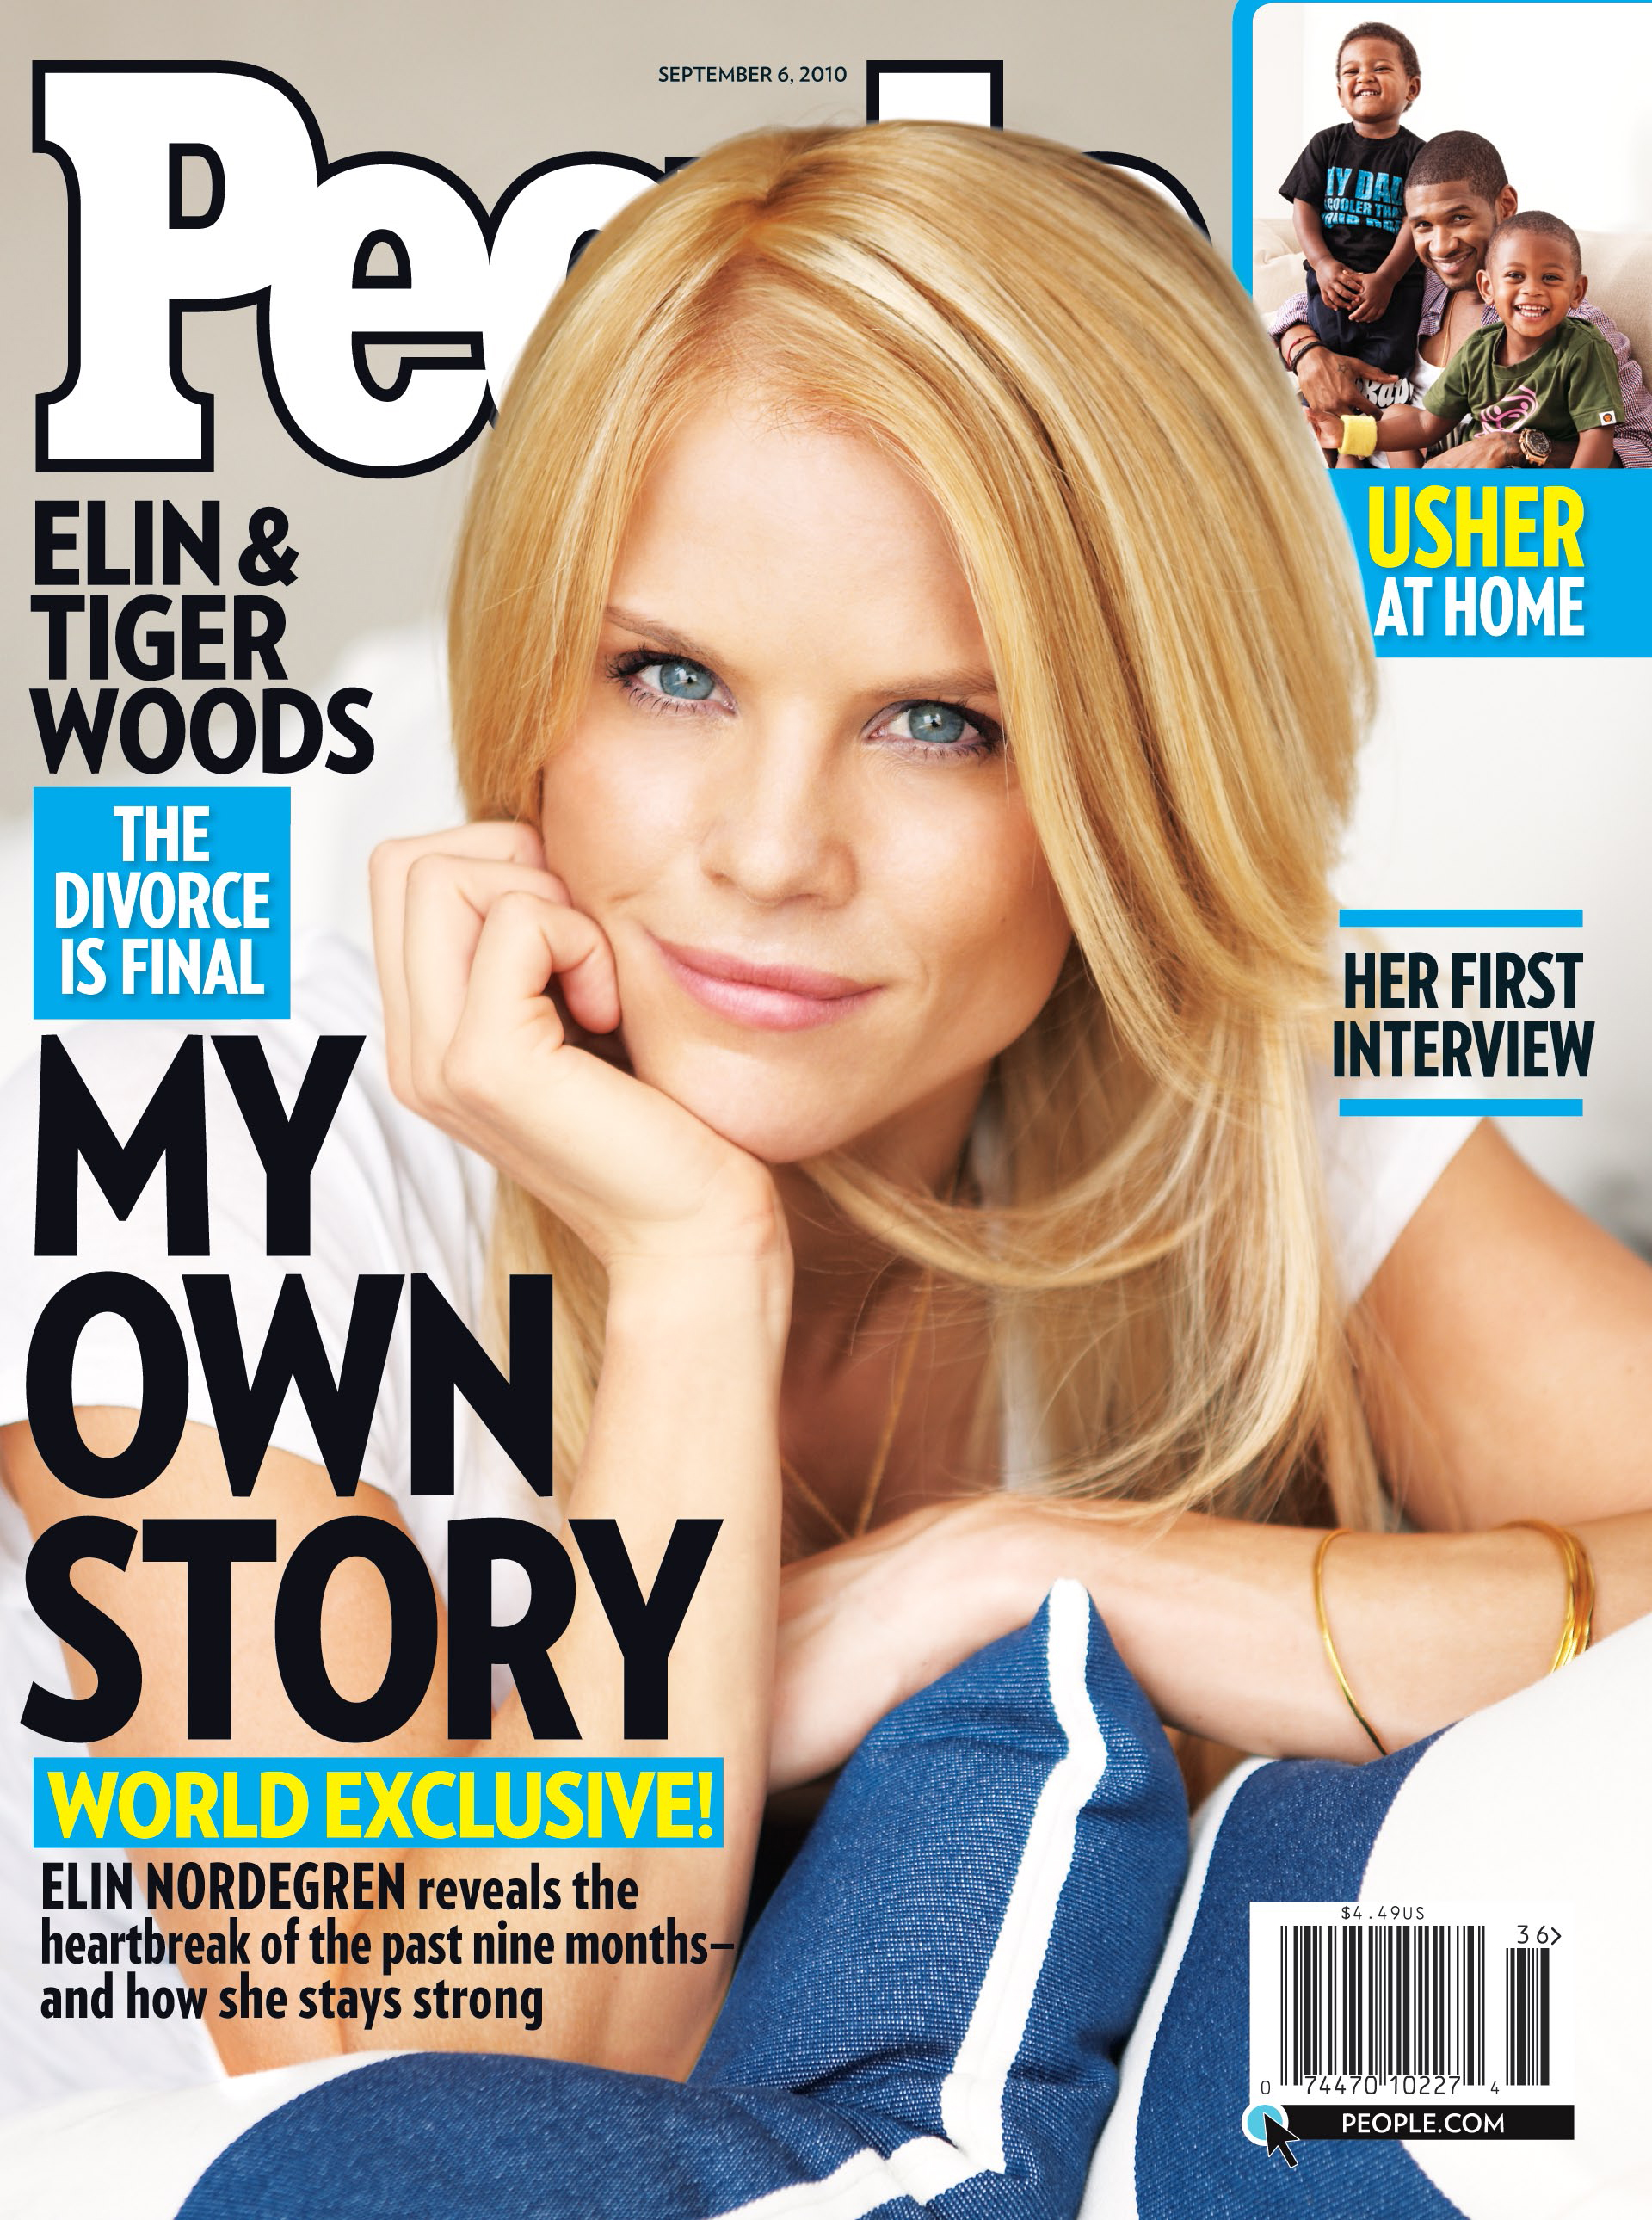 Elin Nordegren is featured on the cover of the Sept. 6, 2010 issue of People.